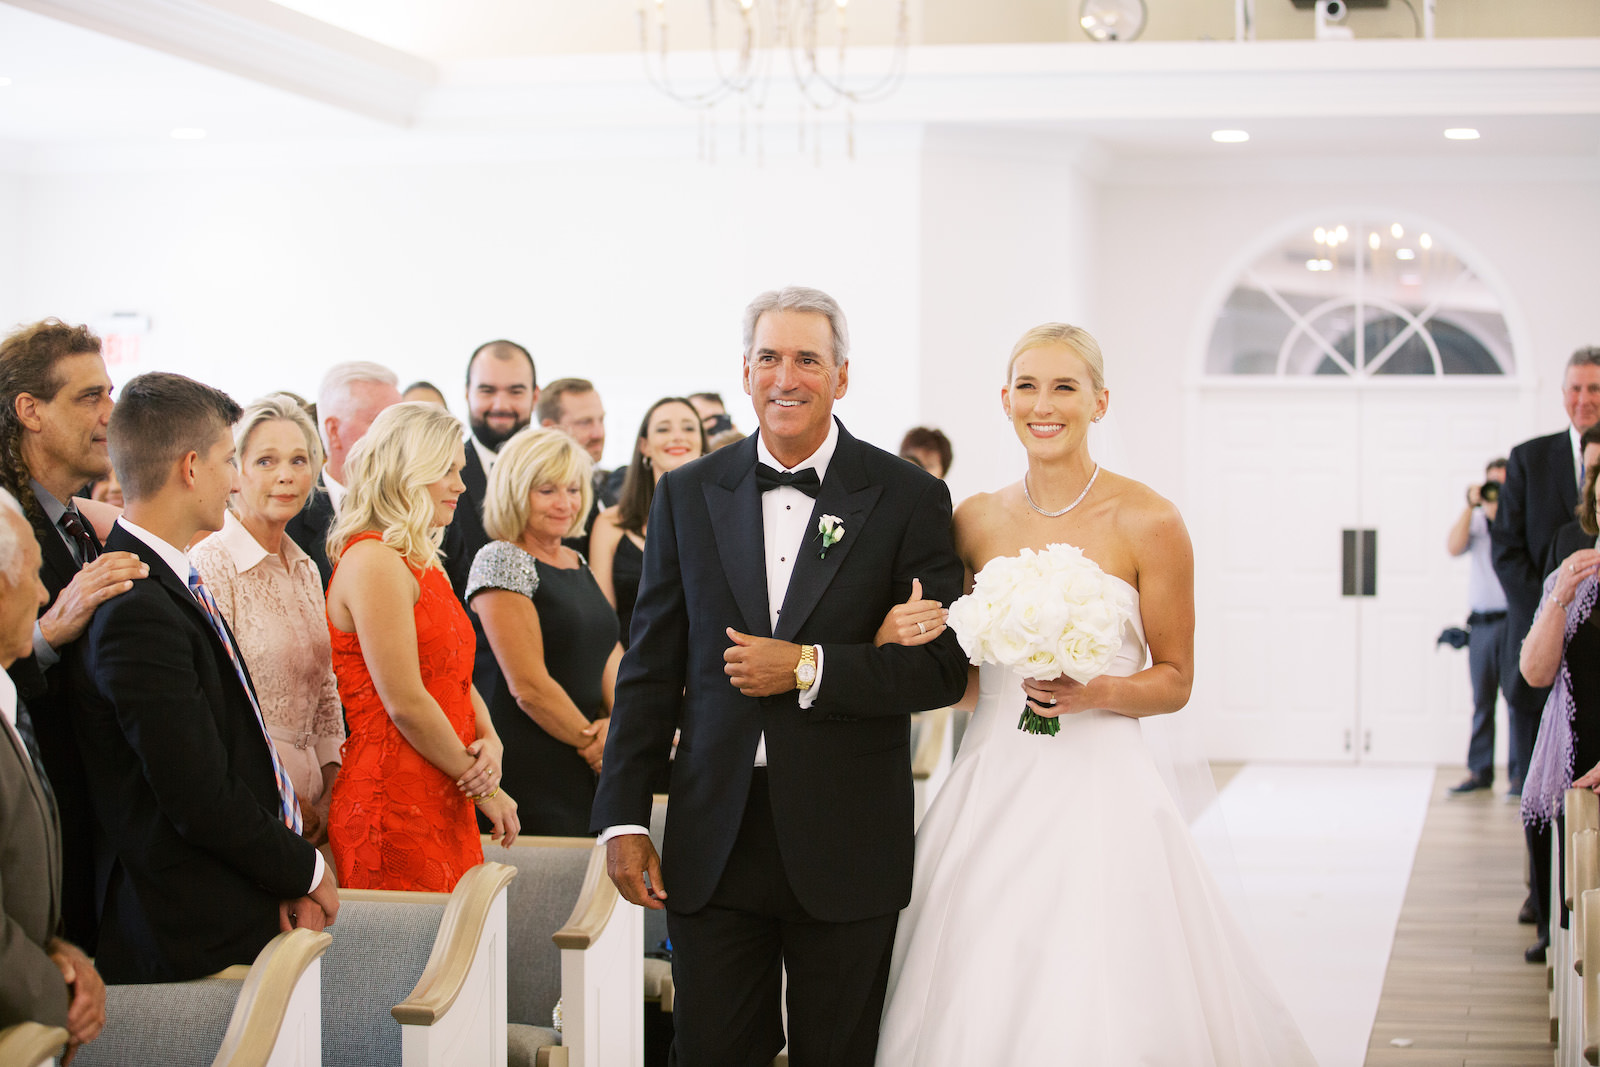 Classic Bride with Father Walking Down the Wedding Ceremony Aisle Portrait | Tampa Bay Wedding Planner Parties A'la Carte | Safety Harbor Church Wedding Venue Harborside Chapel